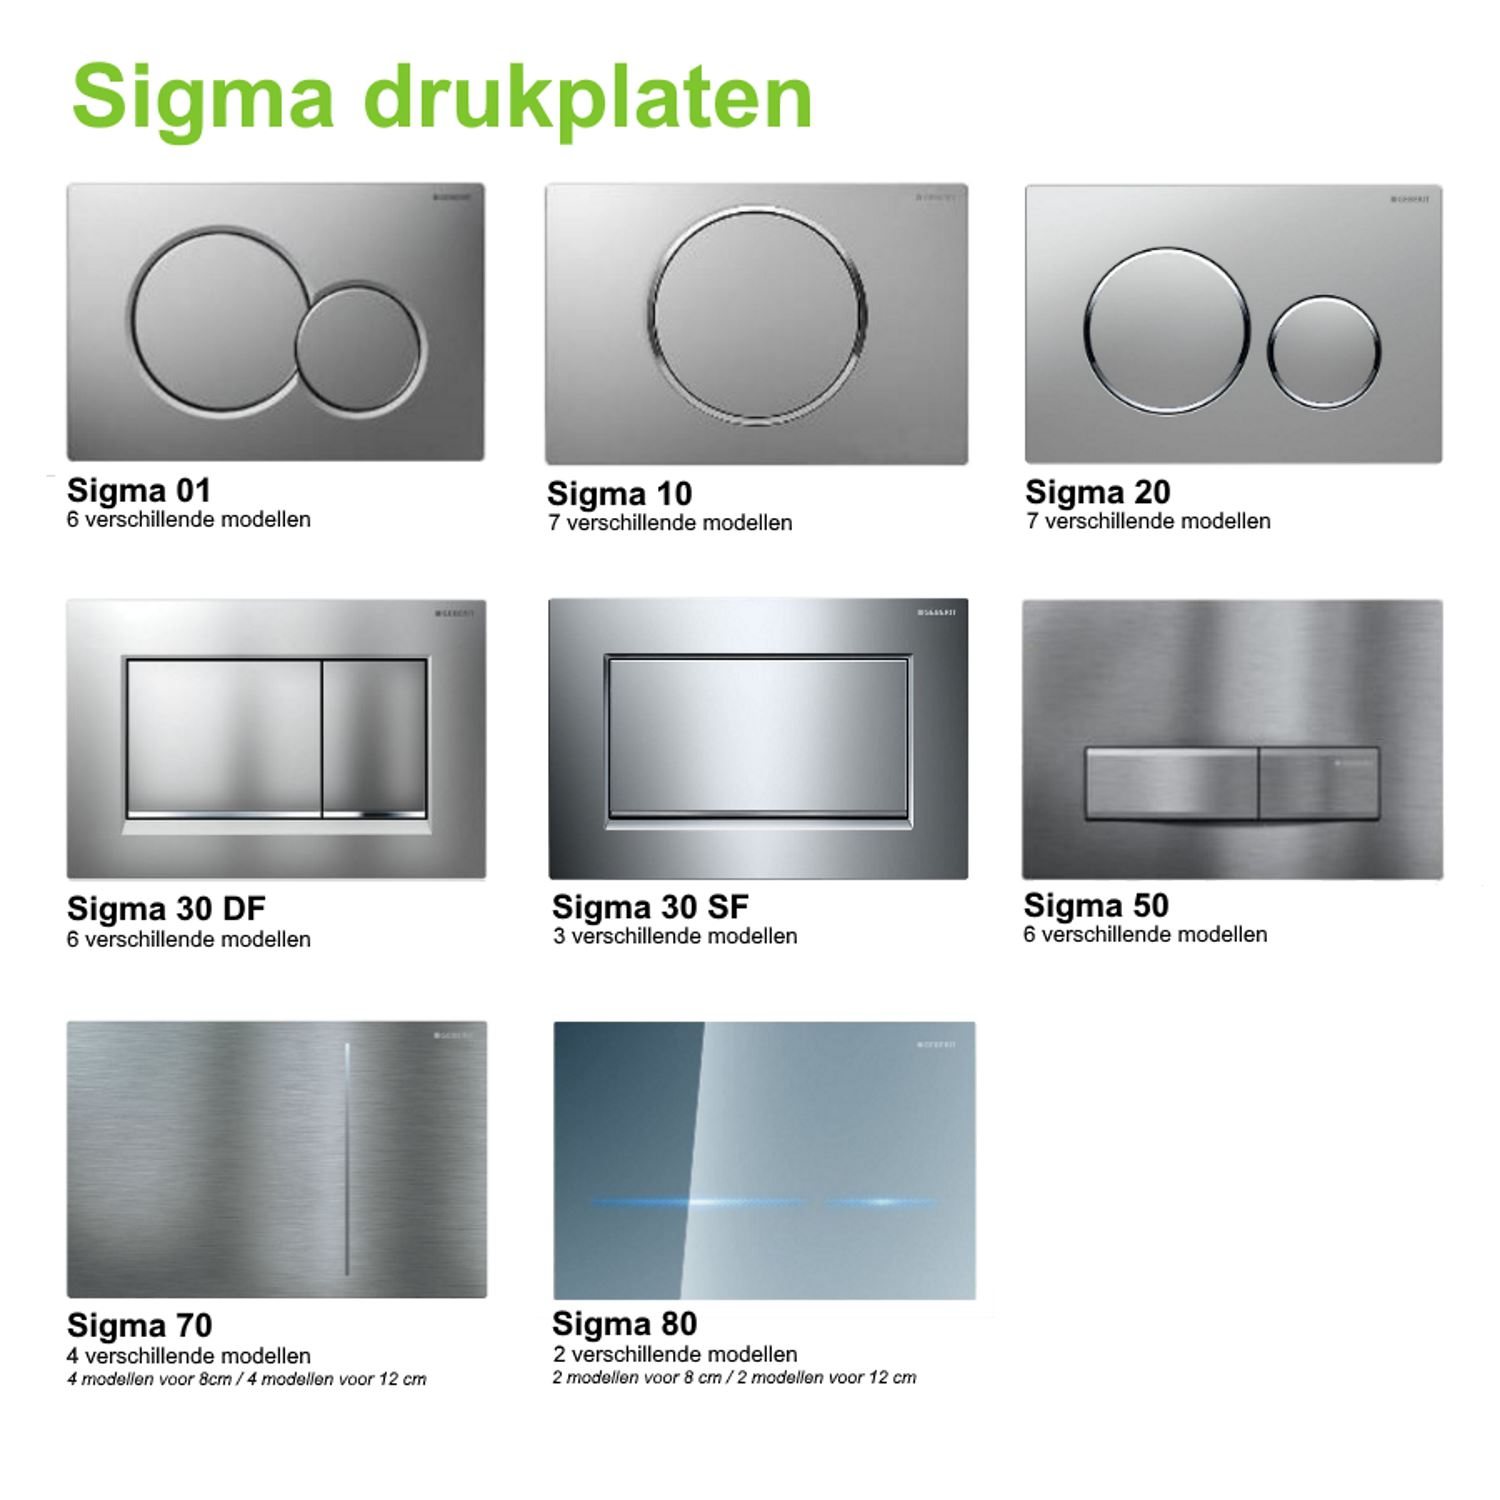 Geberit Up320 Bedieningspaneel Geberit Up320 Toiletset Set01 Basic Smart Met Sigma Drukplaat